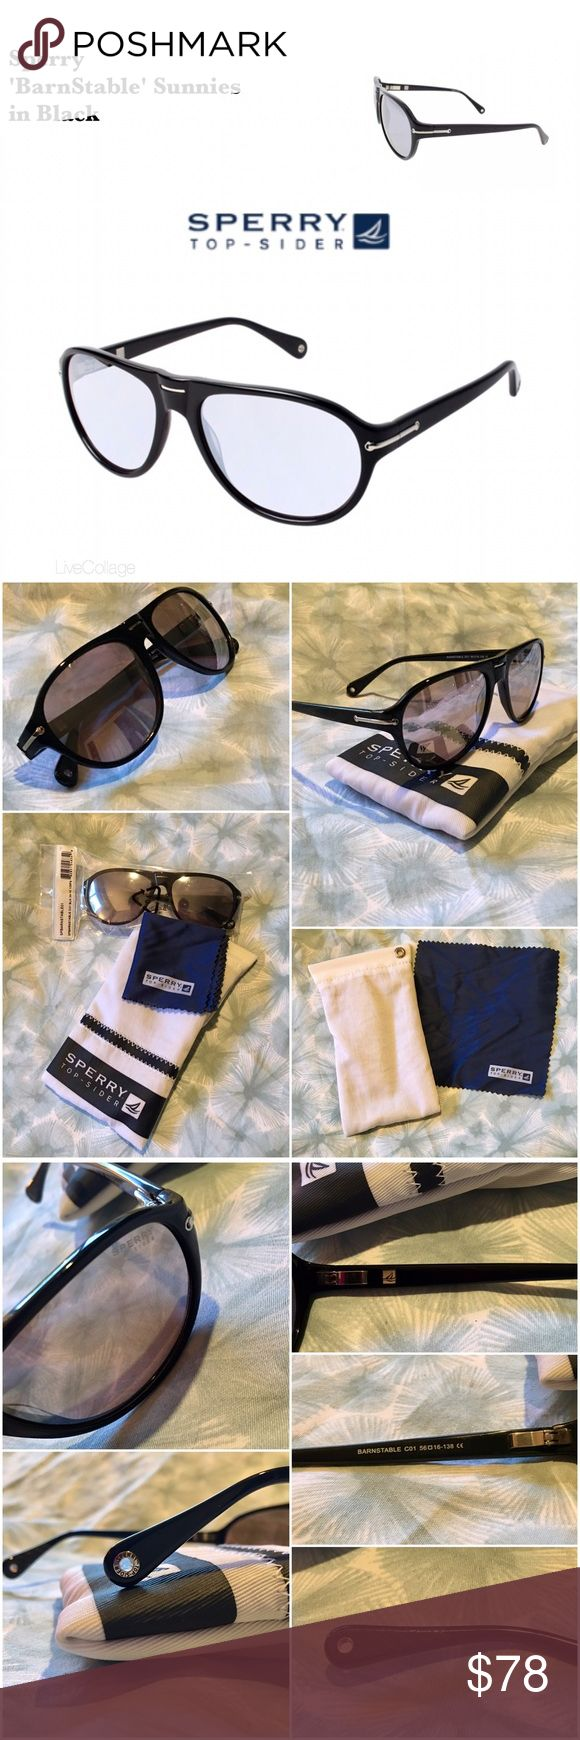 ✨New Black 'BarnStable' Sunglasses from Sperry✨ All around cool yet casual sunnies! Brand new, tags on bag as shown in photo 2. I've seen these described as unisex & women's but since I bought them for me I'm listing as women's. Black w/ silver hardware, inc. signature Sperry grommets. Acetate frame w/ rims on all sides of lenses. Lenses are light grey w/ UV protection. Msmt per inside left arm: 56-16-138. Many logos as shown in photos & light grip pads for behind ears to help keep in place…